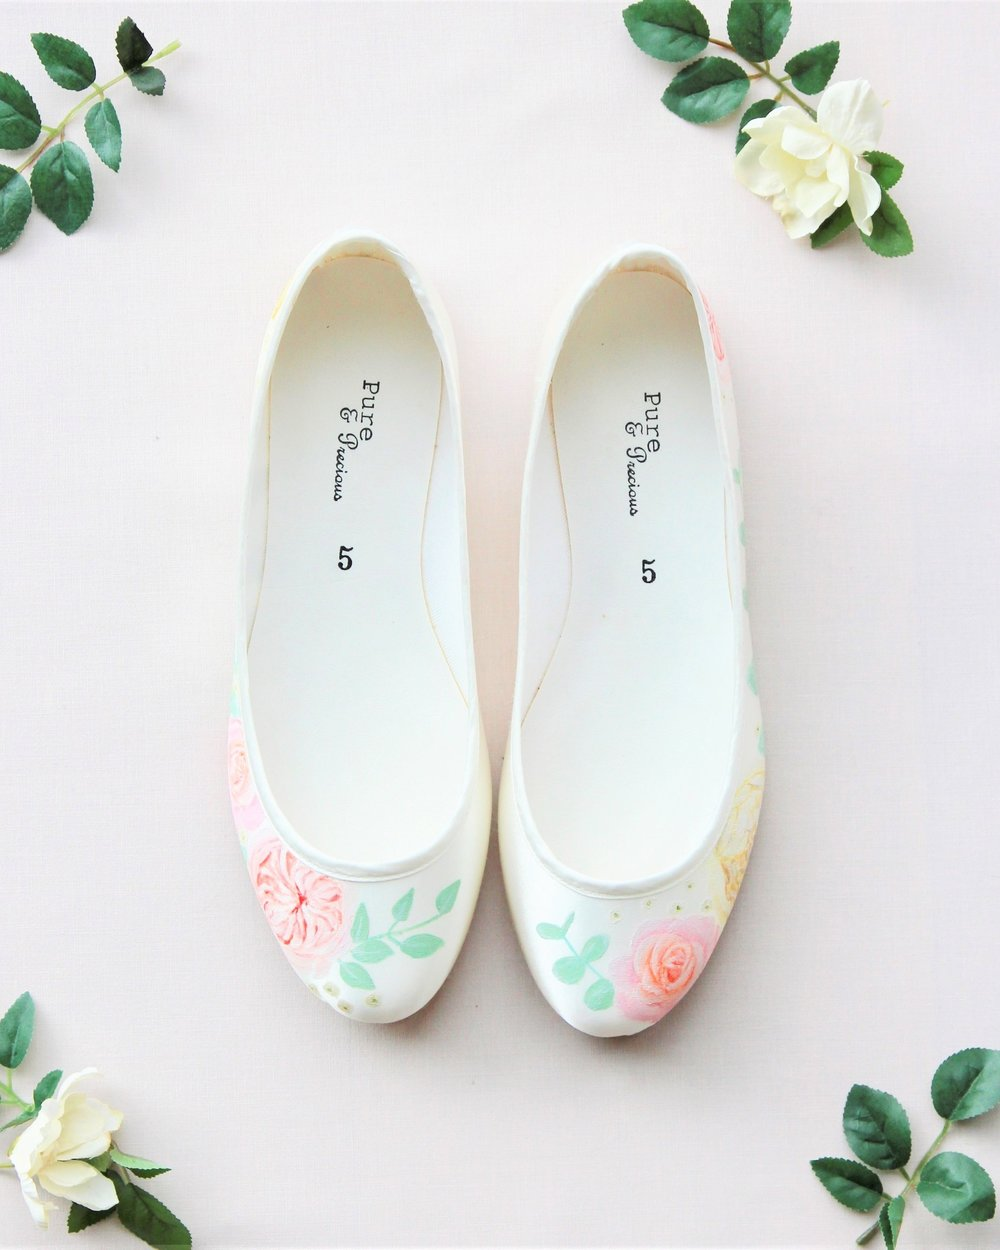 Garden Rose & Eucalyptus Satin Flats - Hand-painted David Austin, patience and miss piggy rose satin flat shoes, with eucalyptus detals.